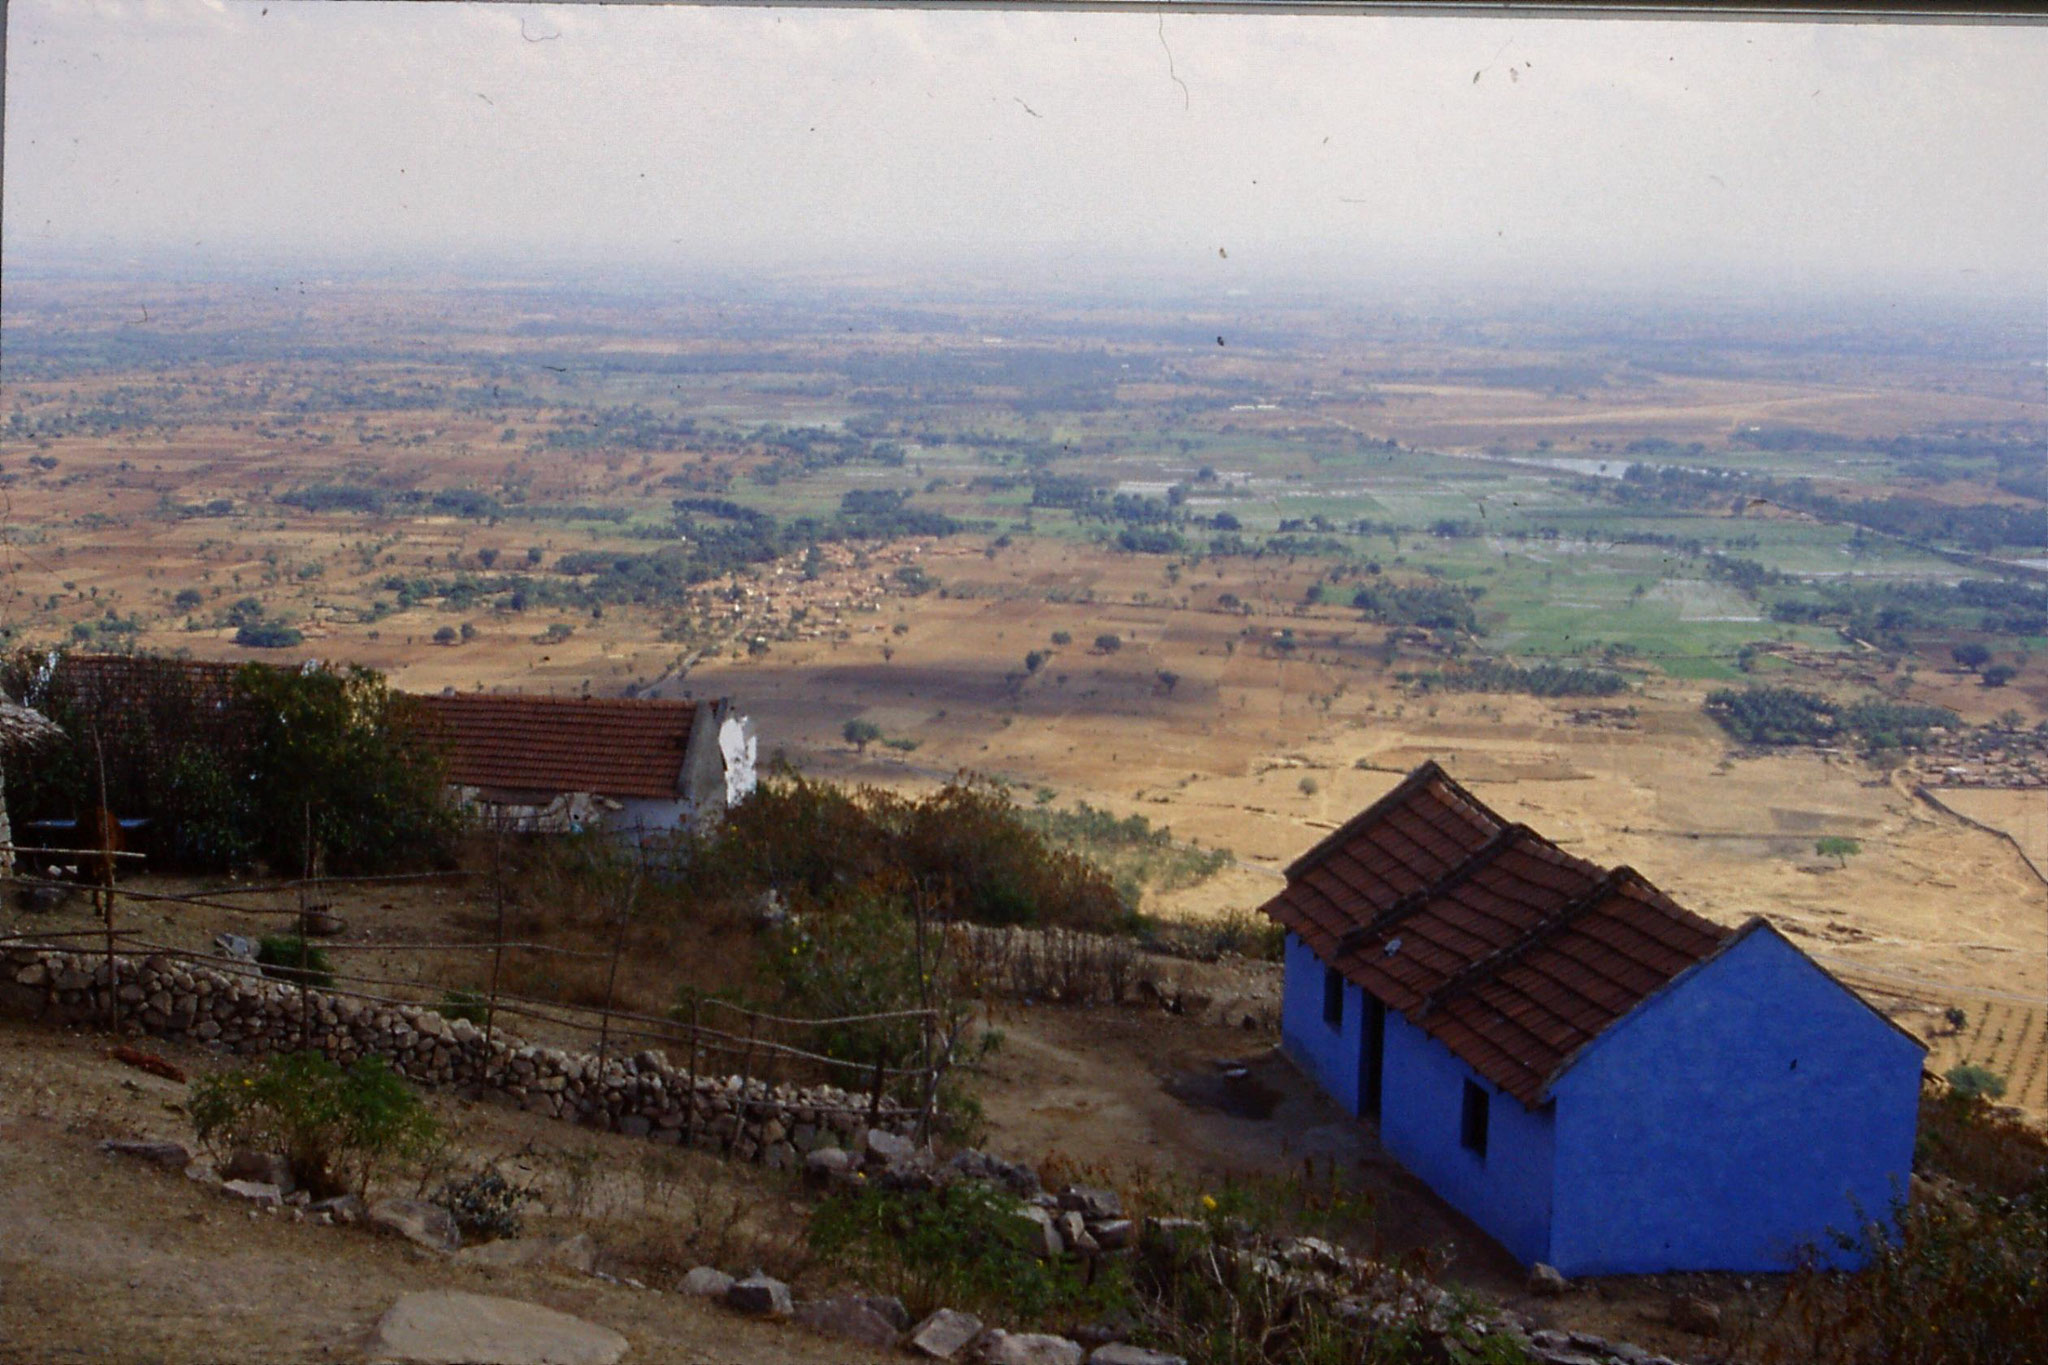 108/4: 12/3/1990 - Mysore - countryside SE from hill